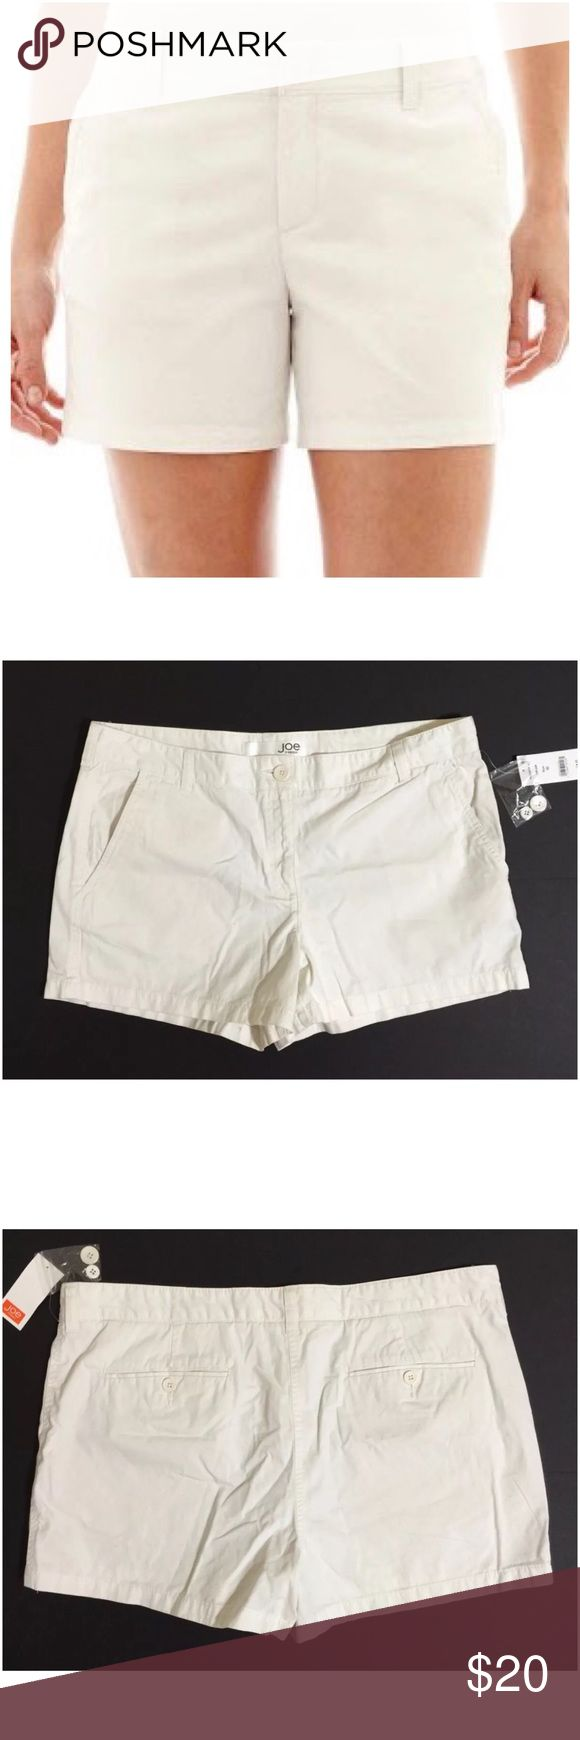 Joe Fresh Shorts Size 16 Joe Fresh Women's Shorts Size 16 Ivory / Cream Color Zip Front 1 External Button Closure 2 Front Pockets 2 Rear Pockets With Button Closure Belt Loops Machine Washable 100% Cotton Inseam Approx. 3.5 Inches Rise Approx. 11 Inches Waist Approx. 39 Inches Hips Approx. 41 Inches New With Tags Joe Fresh Shorts